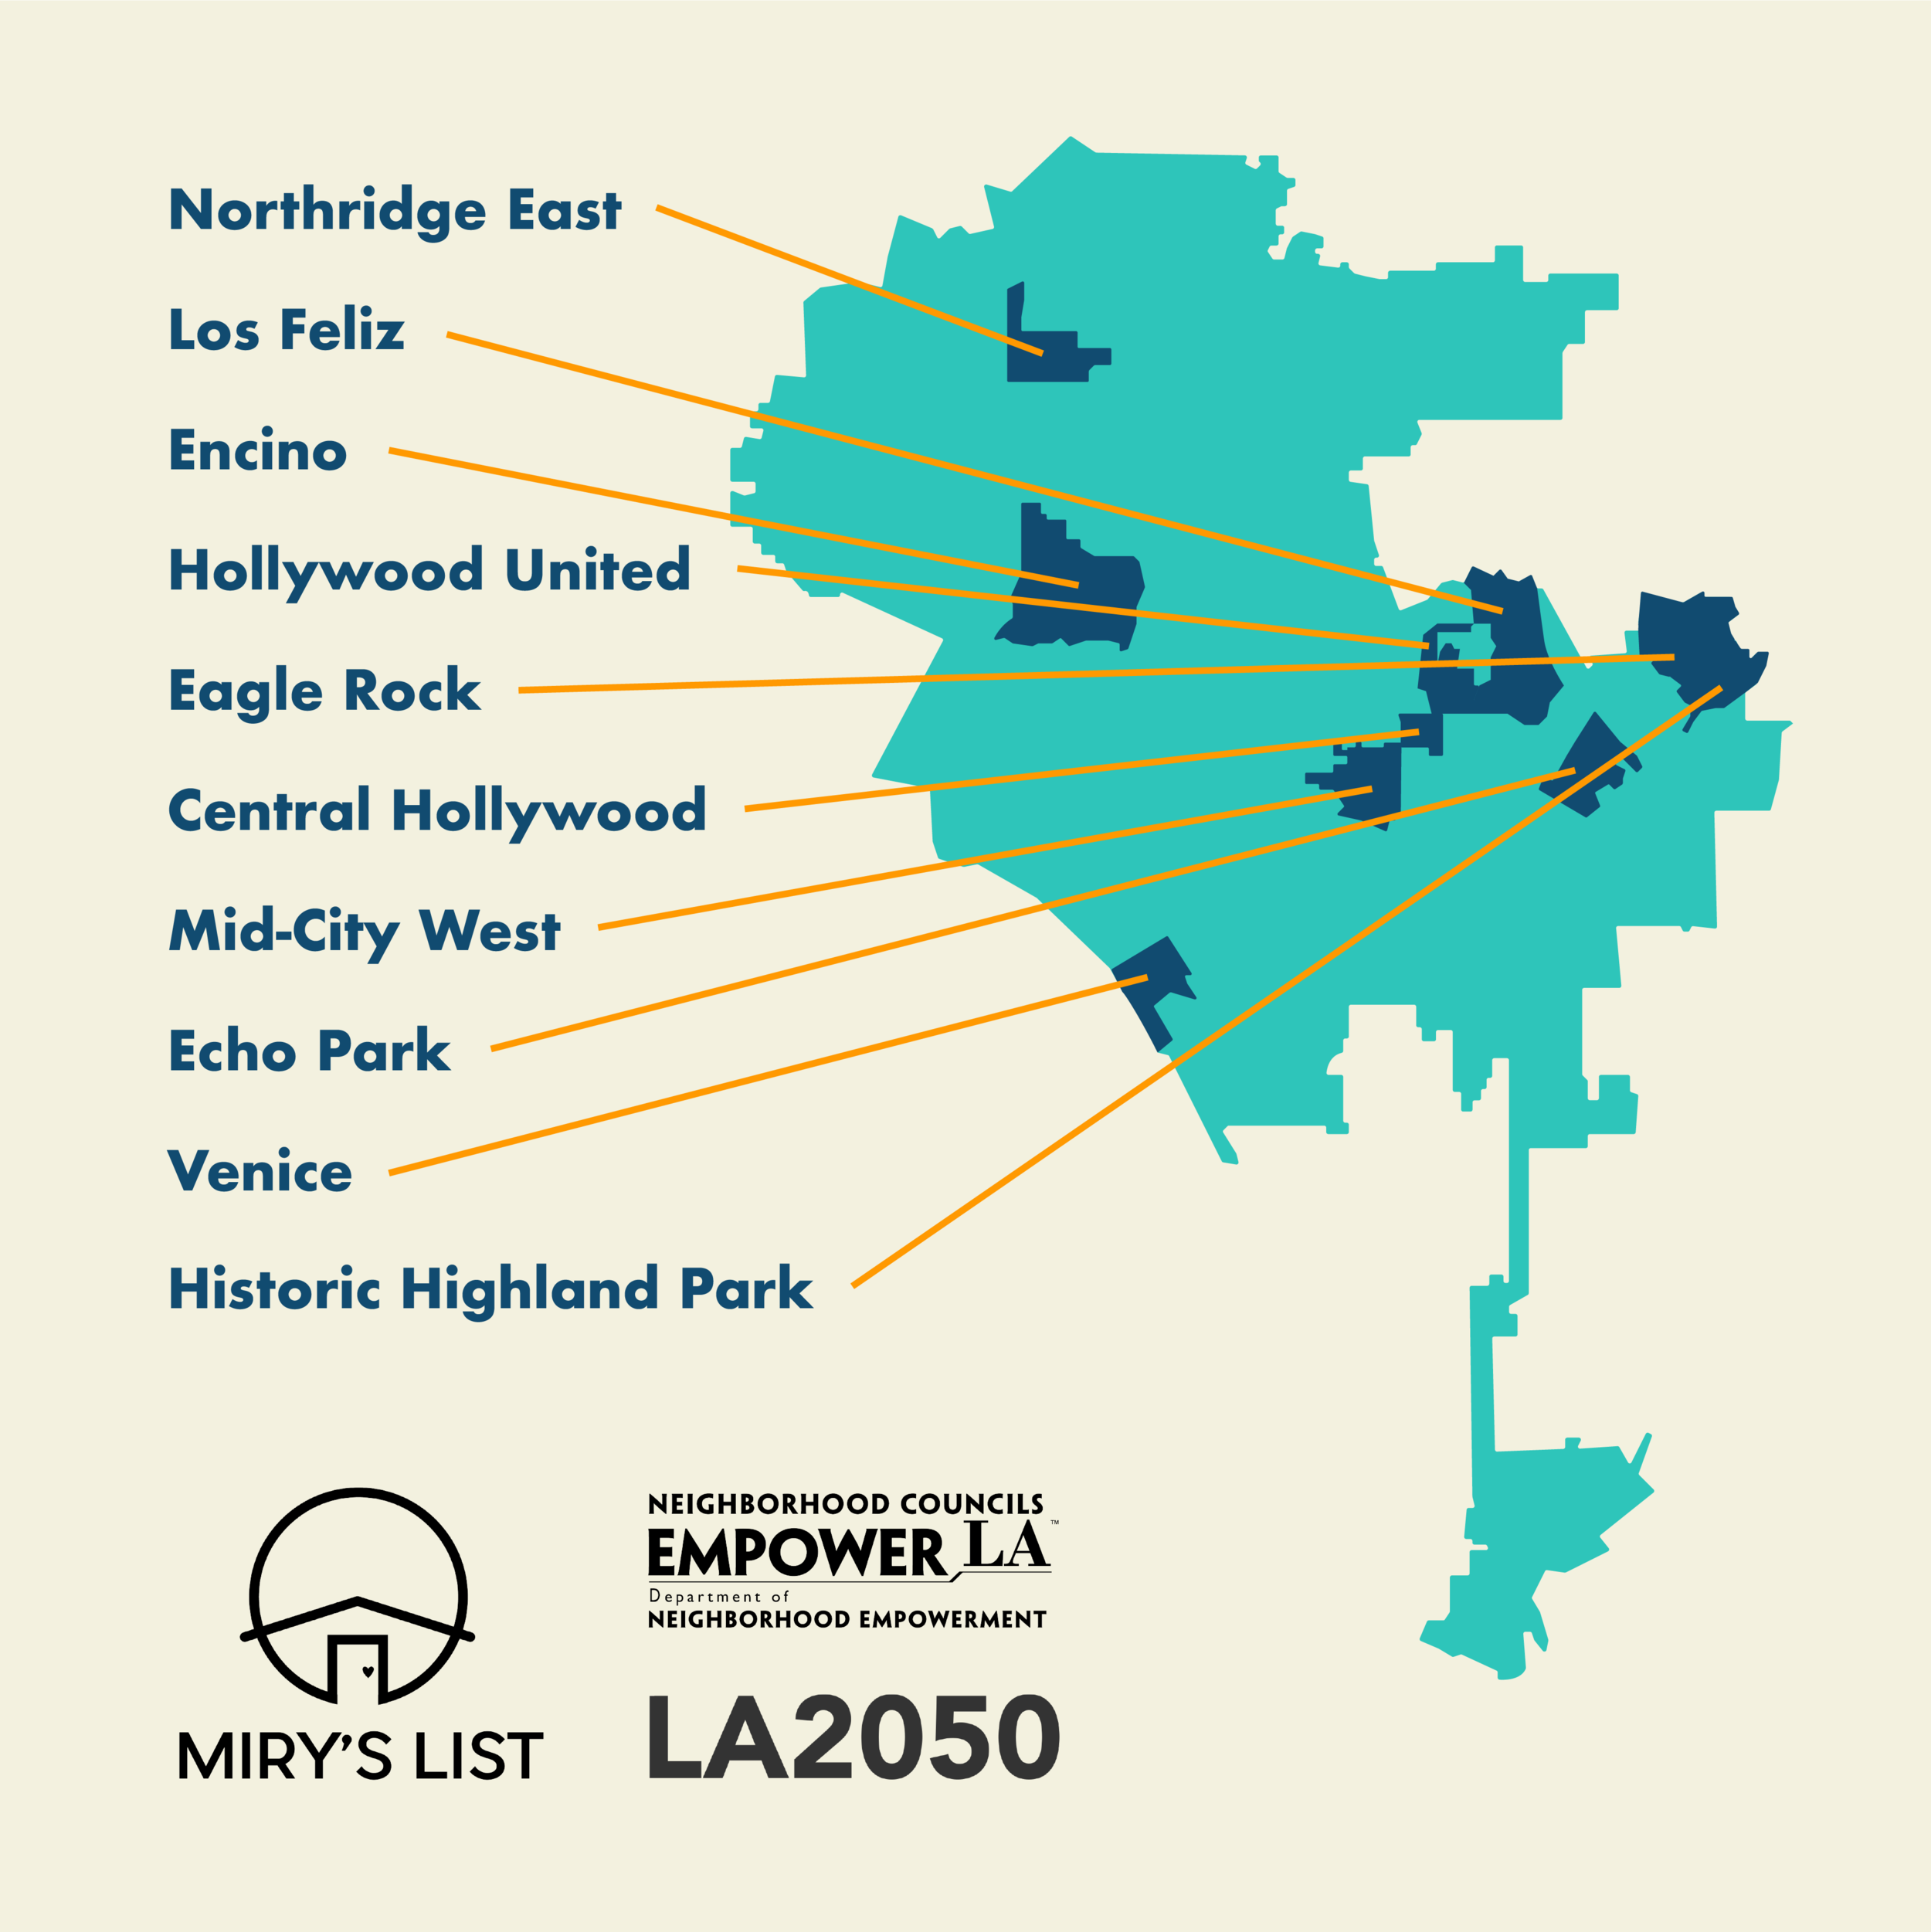 The 10 neighborhood councils for voted yes to pilot Welcome, Neighbor to make LA more welcoming for resettling Angelenos